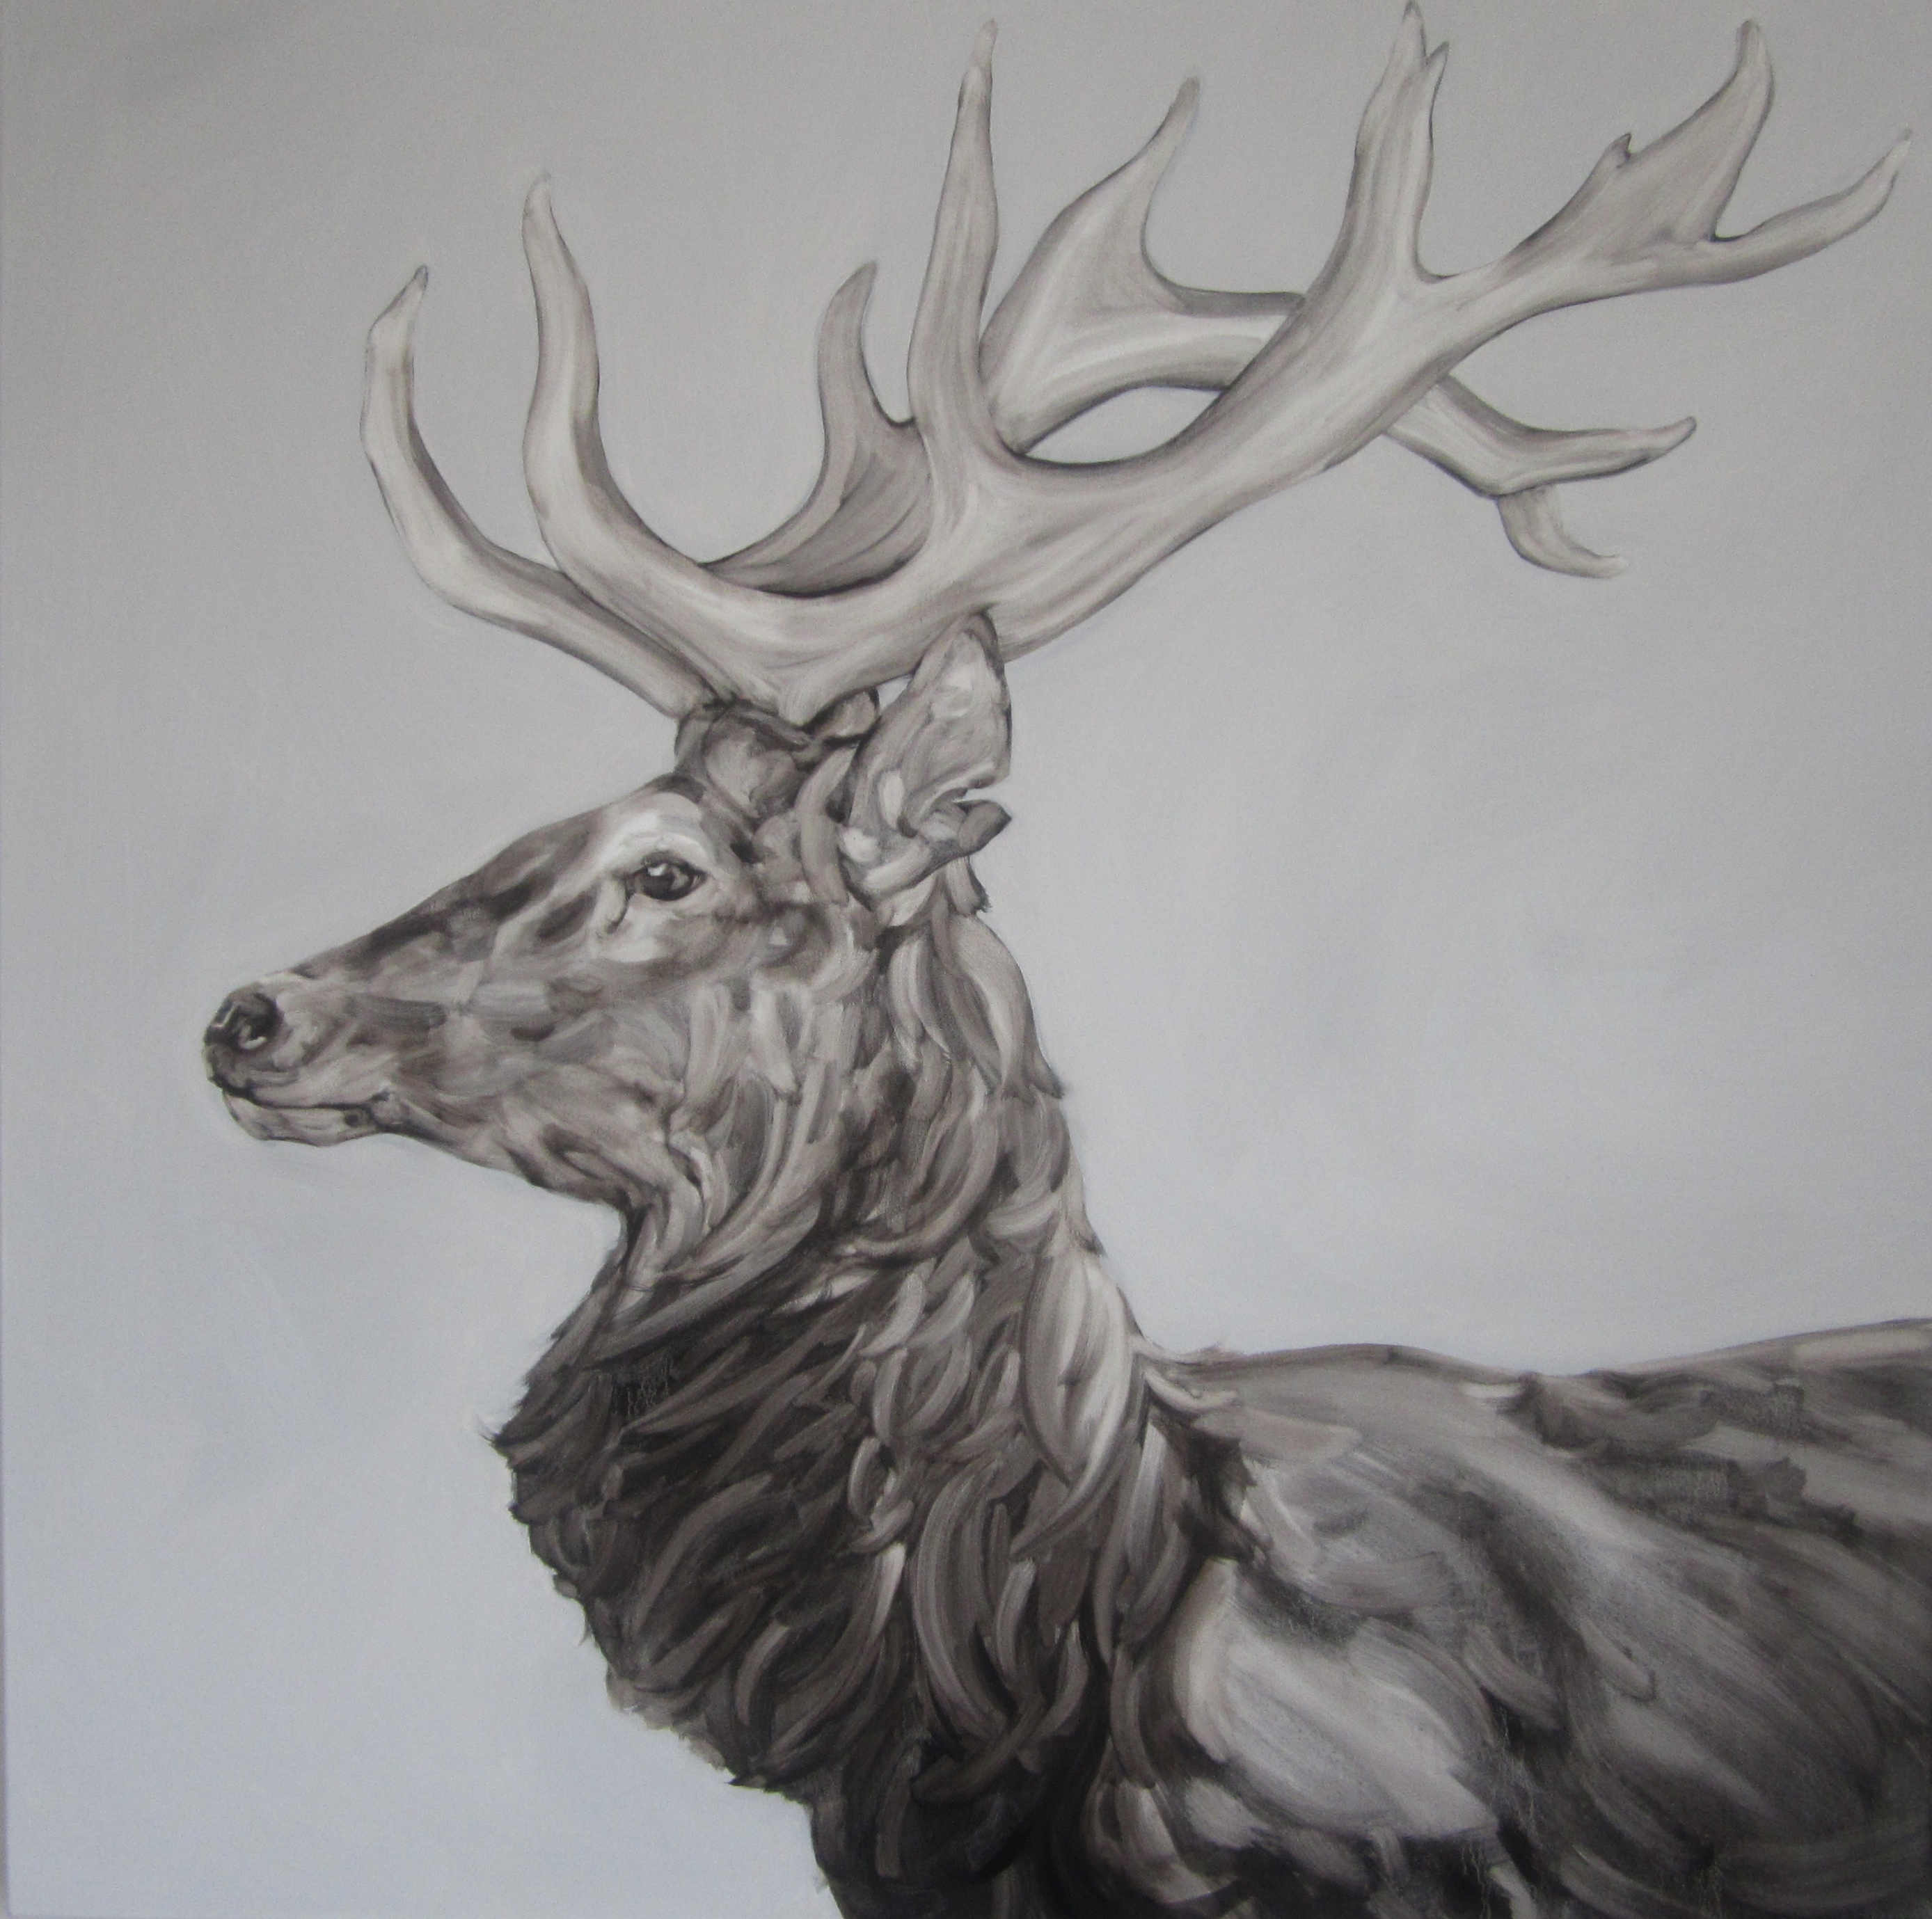 Drawn stag profile ( Lost And Community )100x100cm